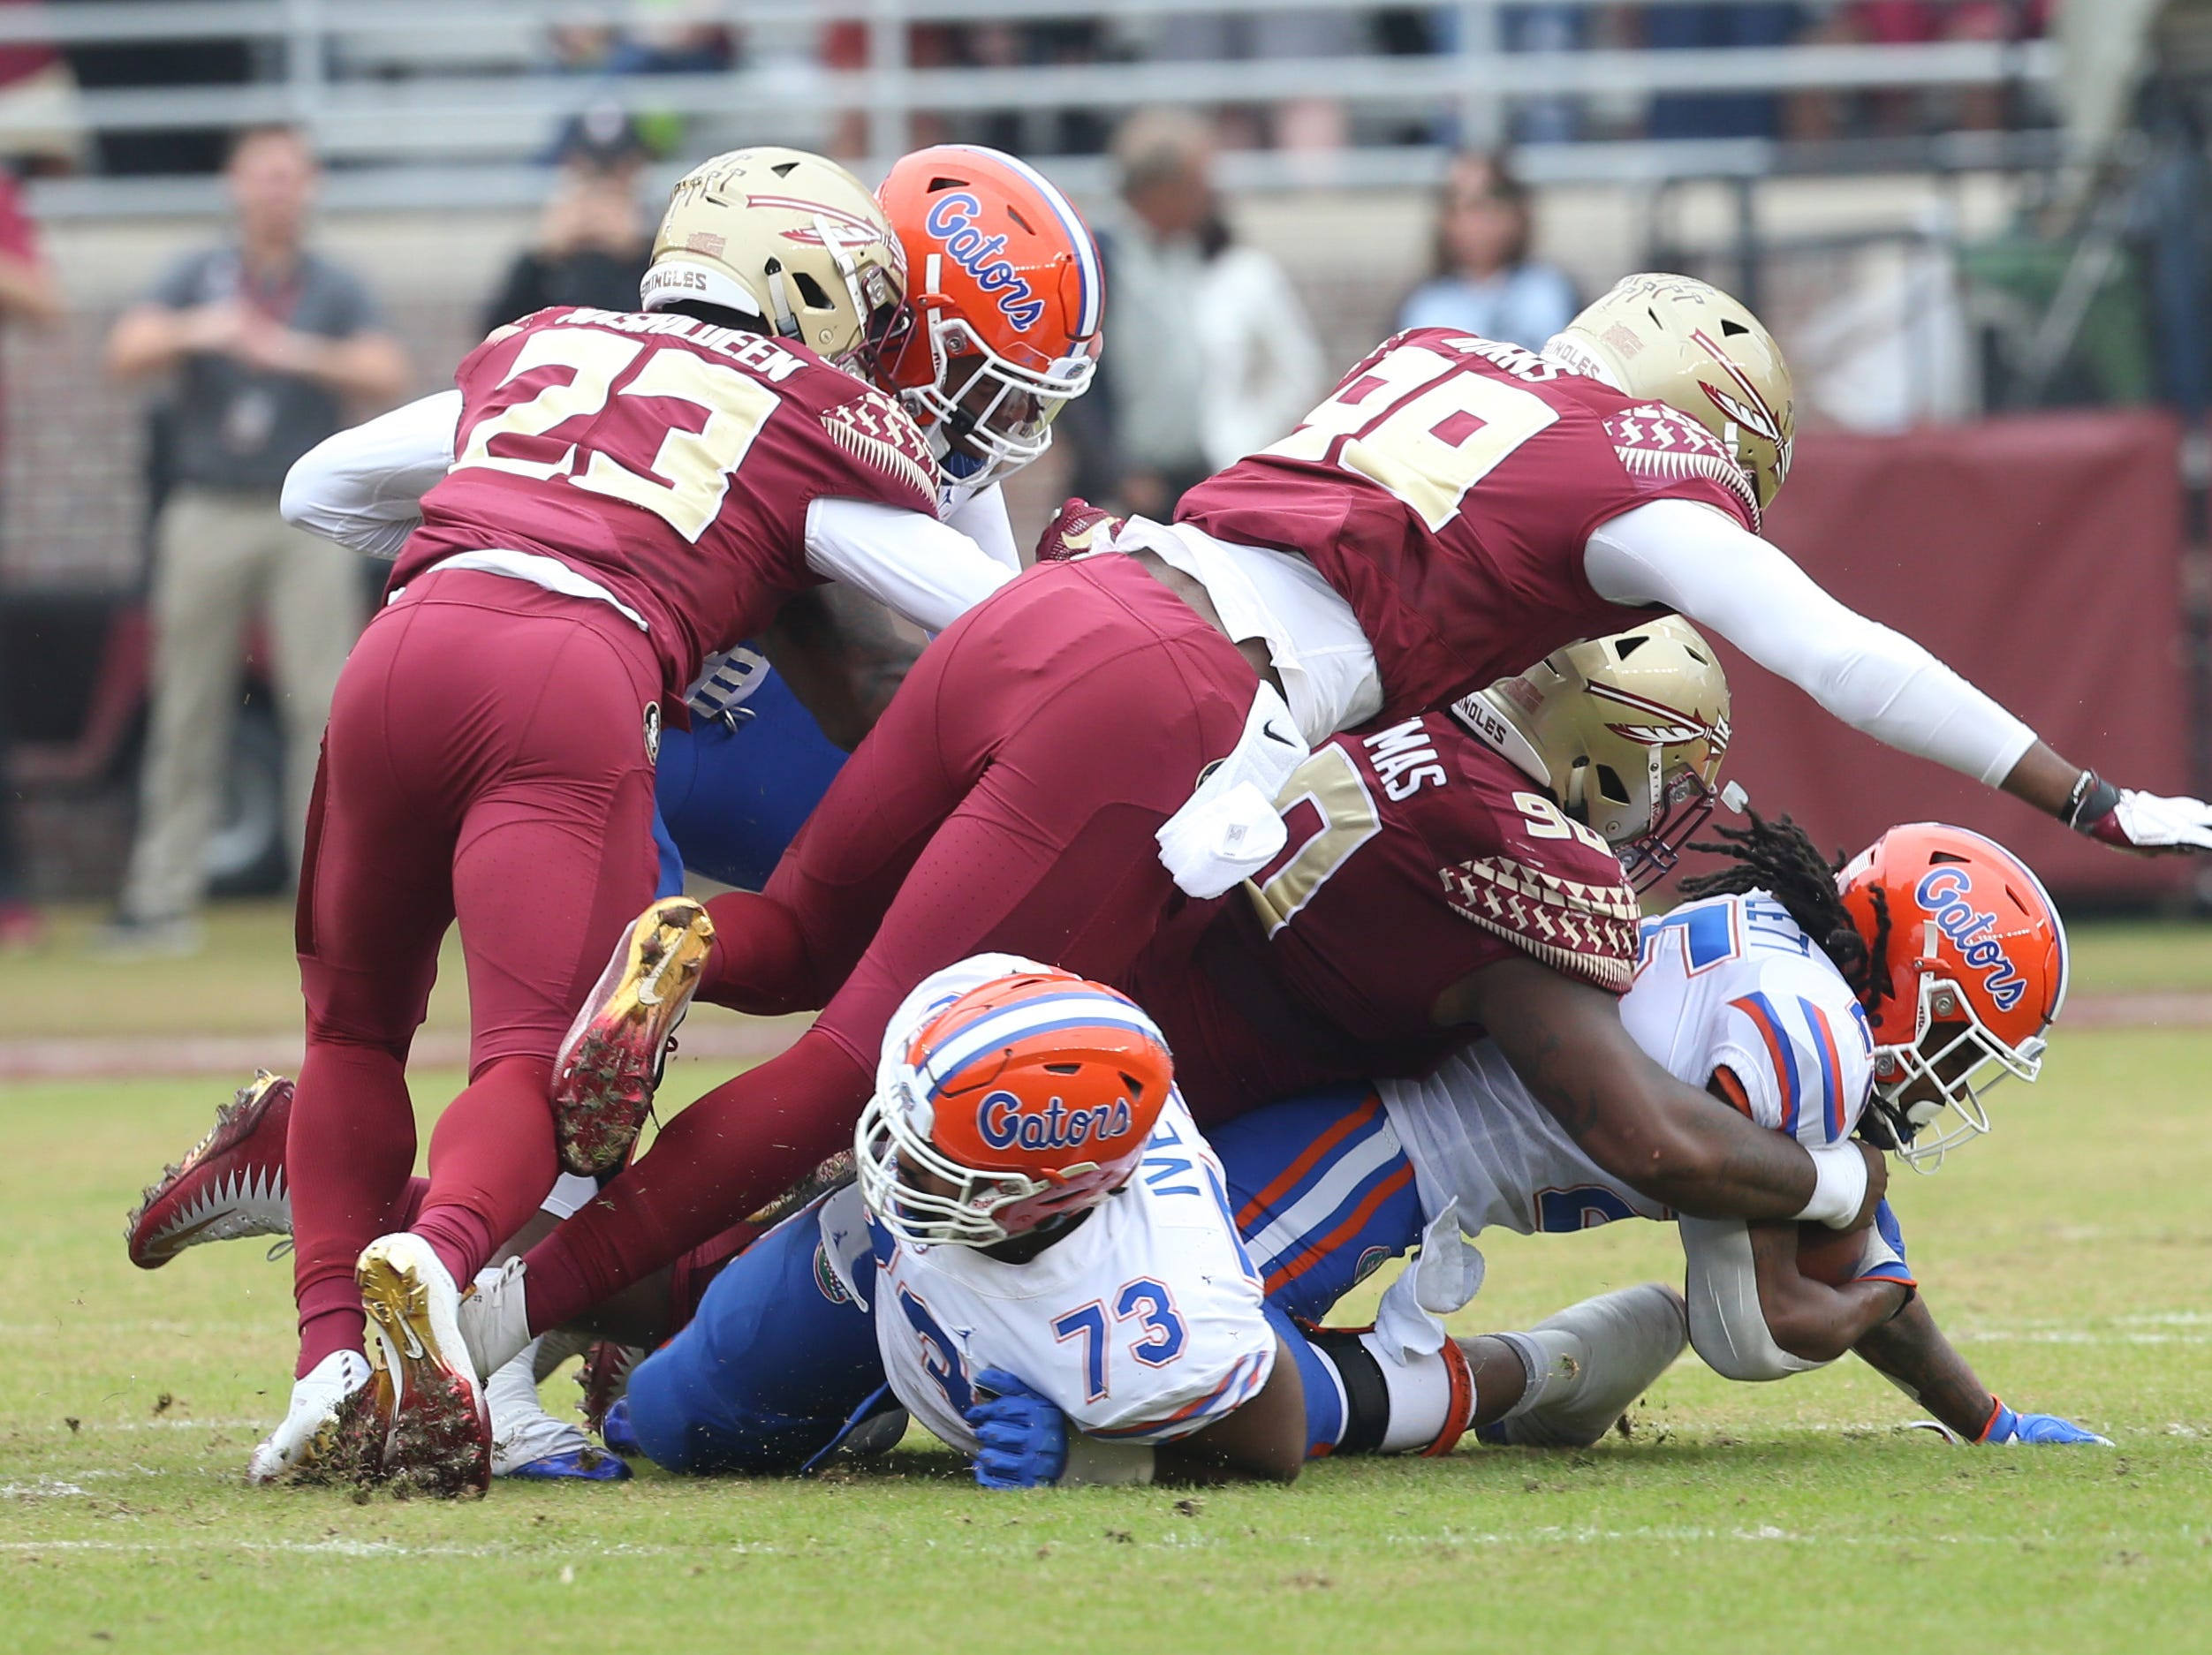 Florida Gators running back Jordan Scarlett (25) gets taken down by the defense as the Florida State Seminoles take on their rival the Florida Gators in college football at Doak S. Campbell Stadium, Saturday, Nov. 24, 2018.